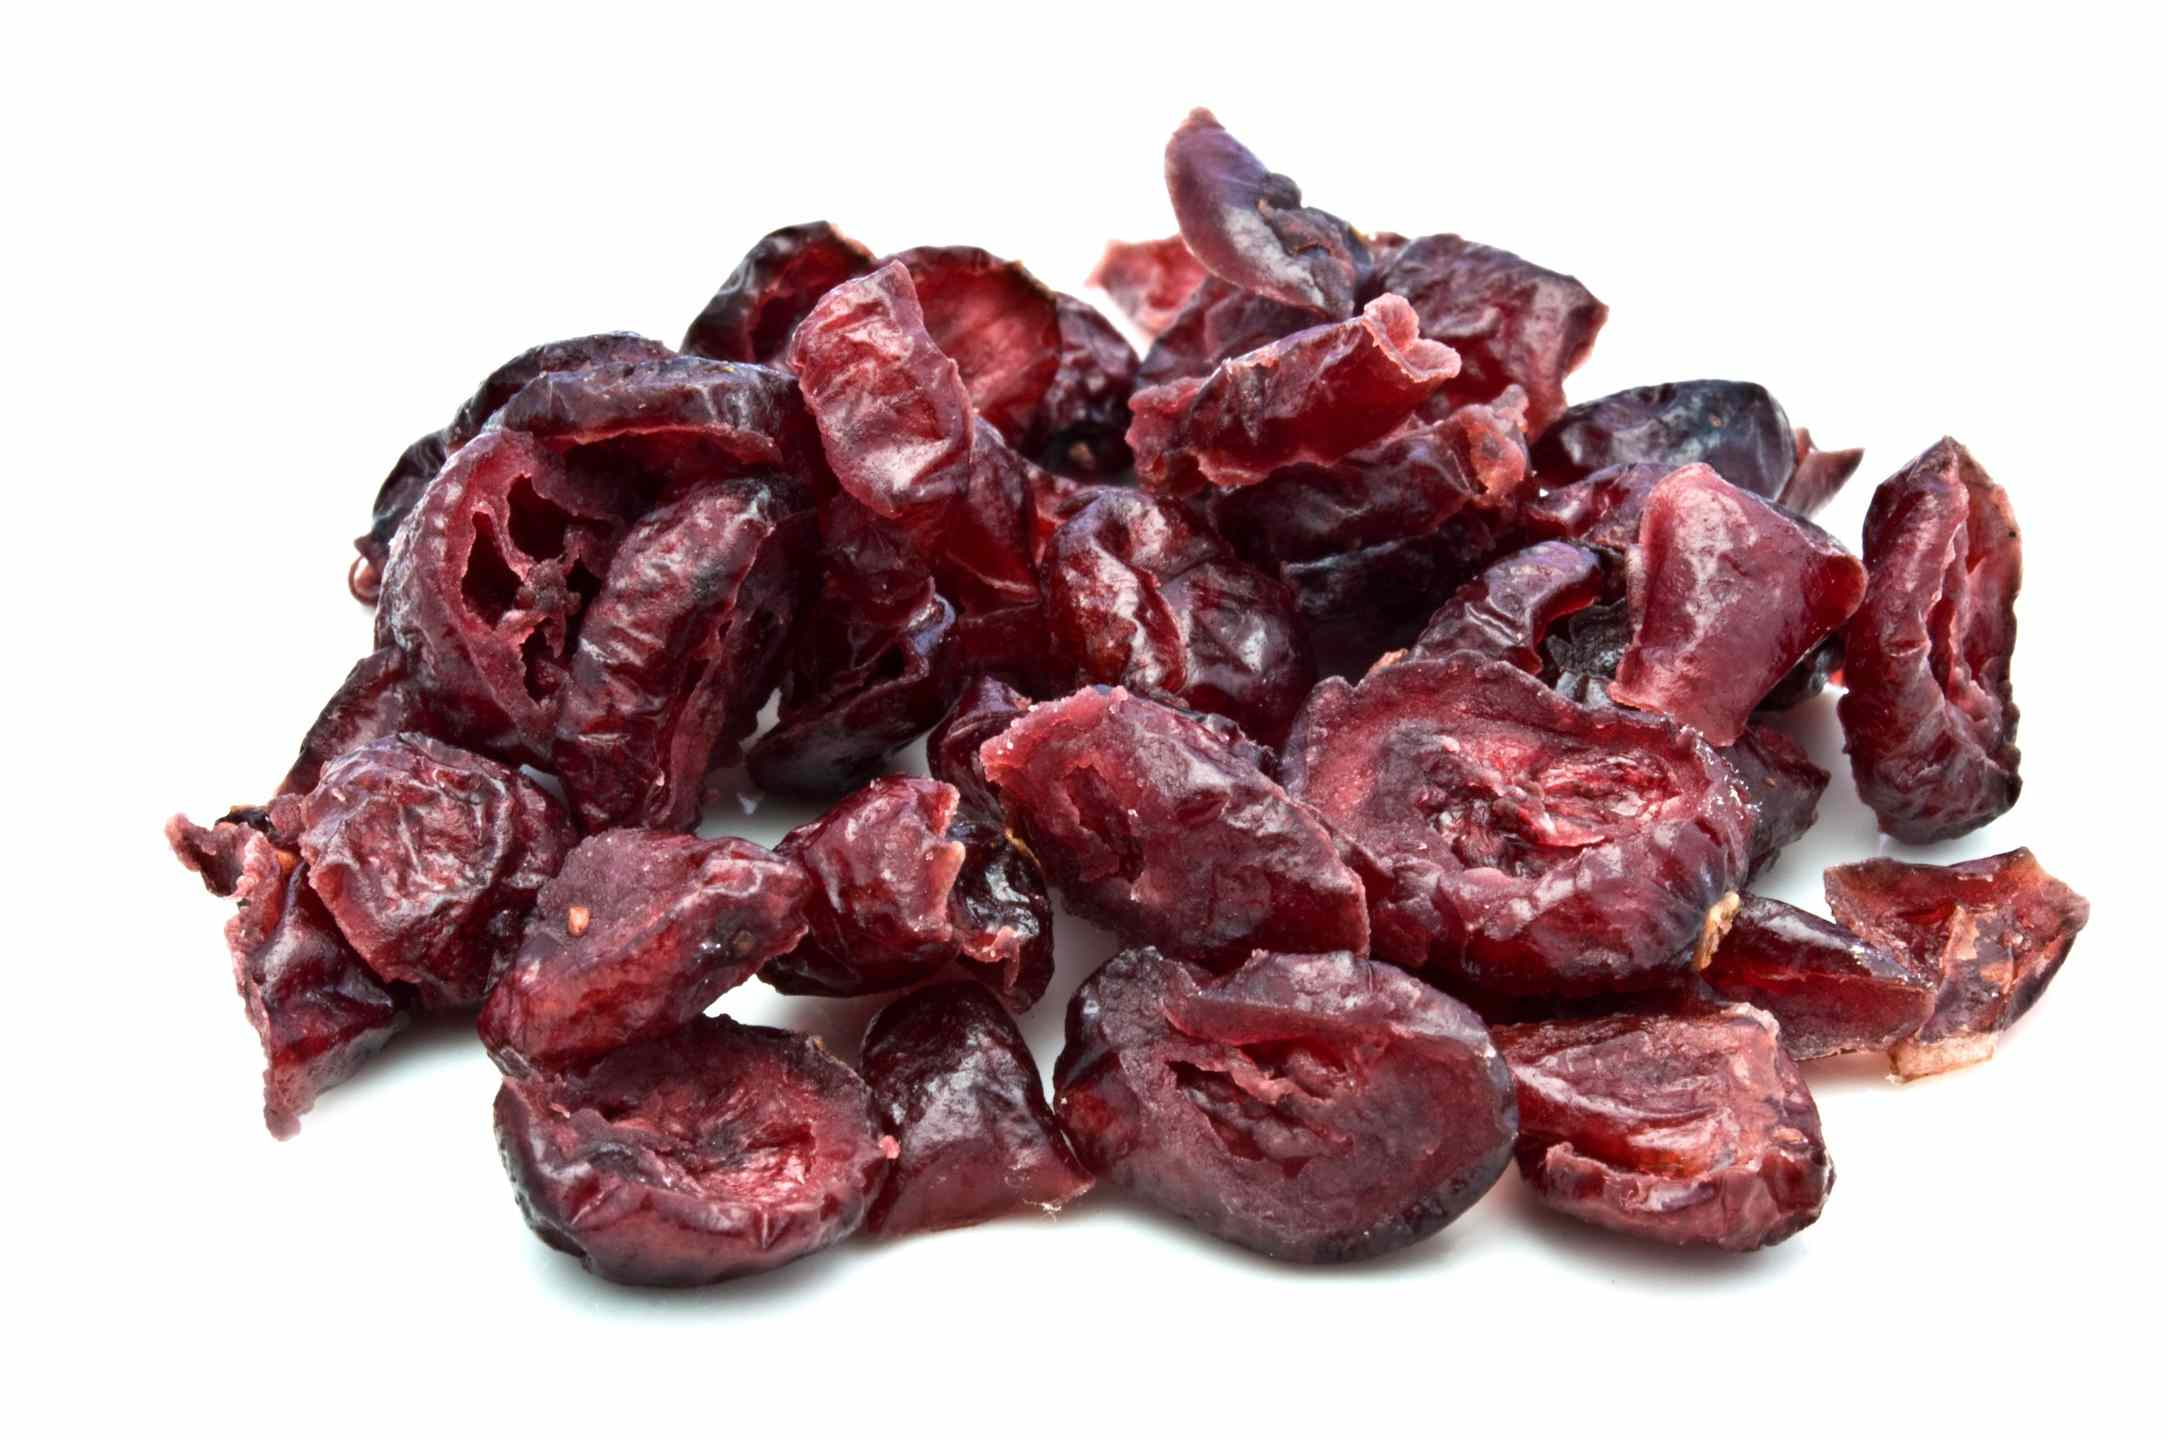 Differences Between Currants, Raisins, and Sultanas